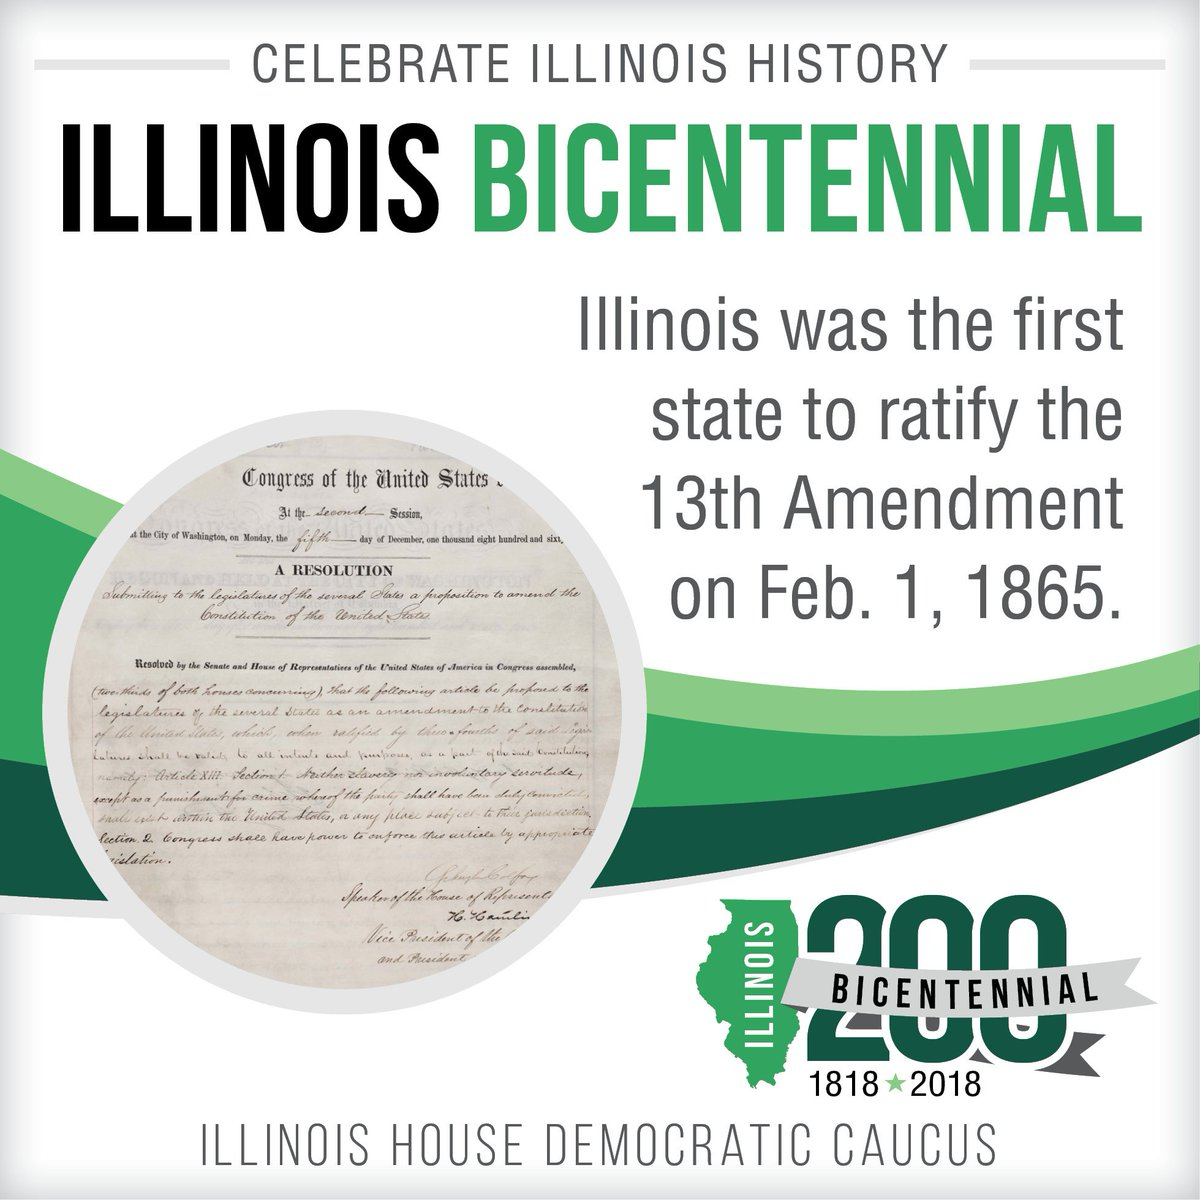 test Twitter Media - Did you know that the Thirteenth Amendment, which abolished slavery, was written by U.S. Senator Lyman Trumbull from Alton, Illinois? #Celebrate200 #IllinoisProud https://t.co/x4YMVq5rJd